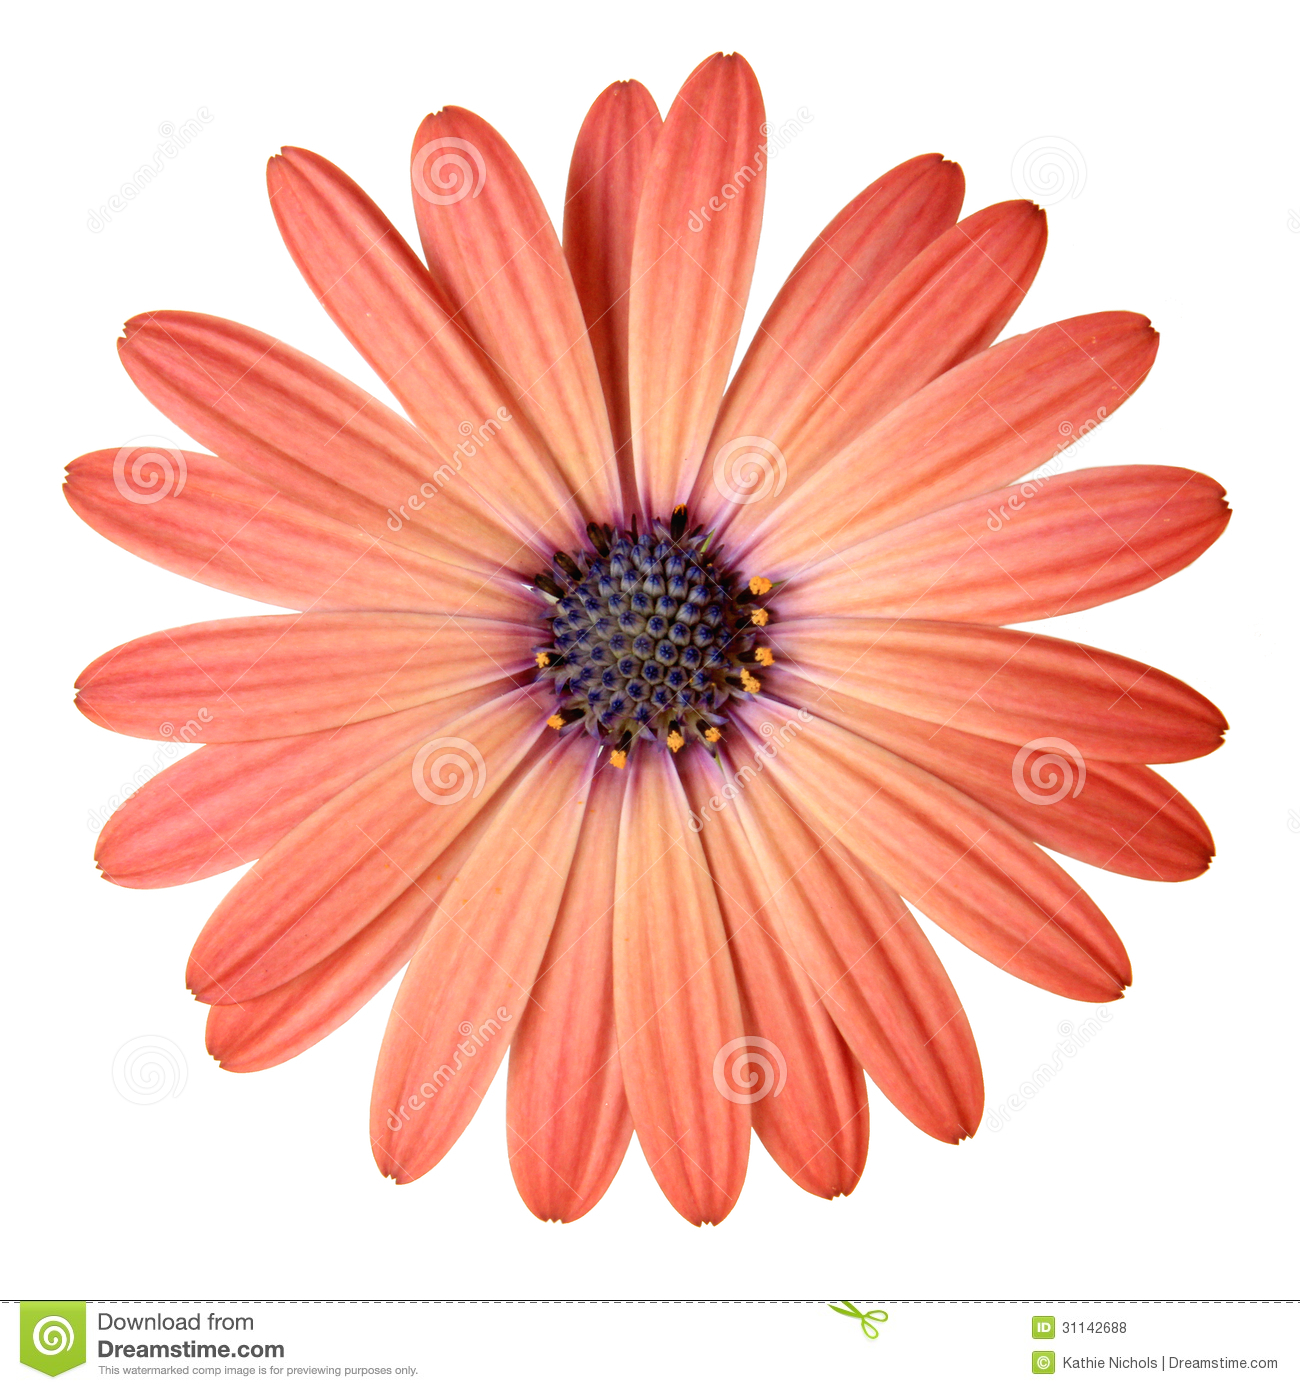 peach color daisy royalty free stock photos  image, Beautiful flower